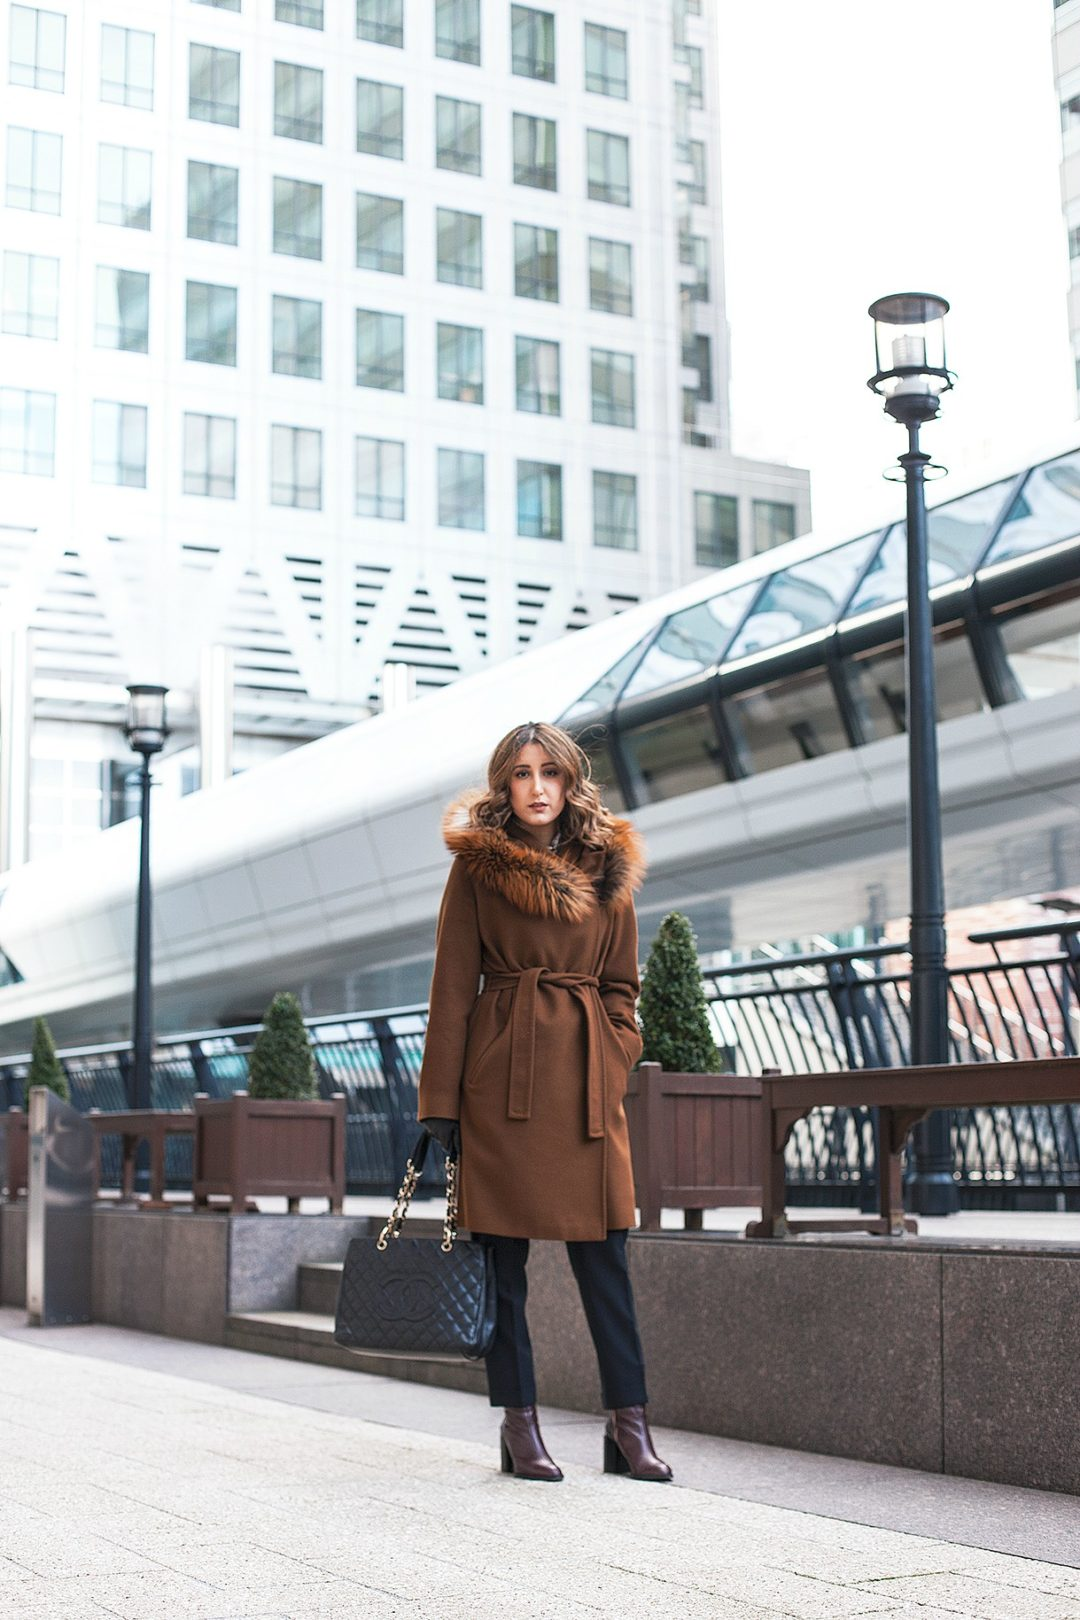 5ed3d810812f Winter in Spring - OOTD - Alternating winter fashion favourites for ...